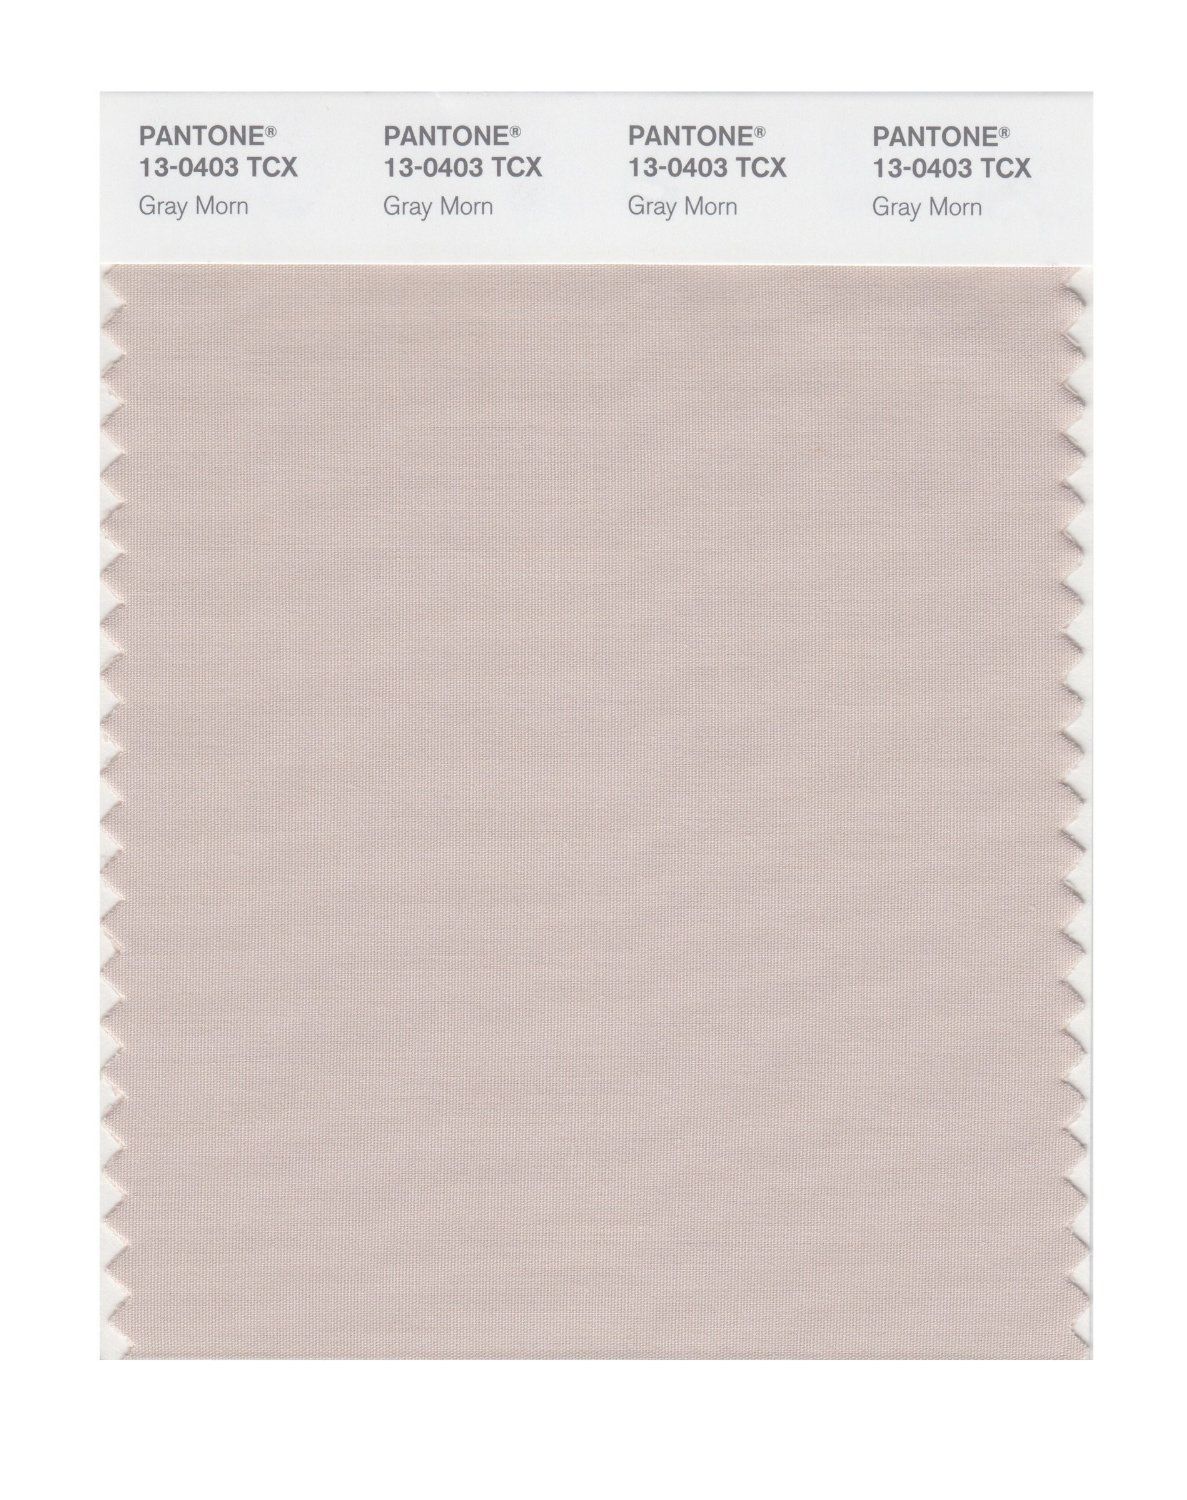 Pantone Smart Swatch 13-0403 Gray Morn